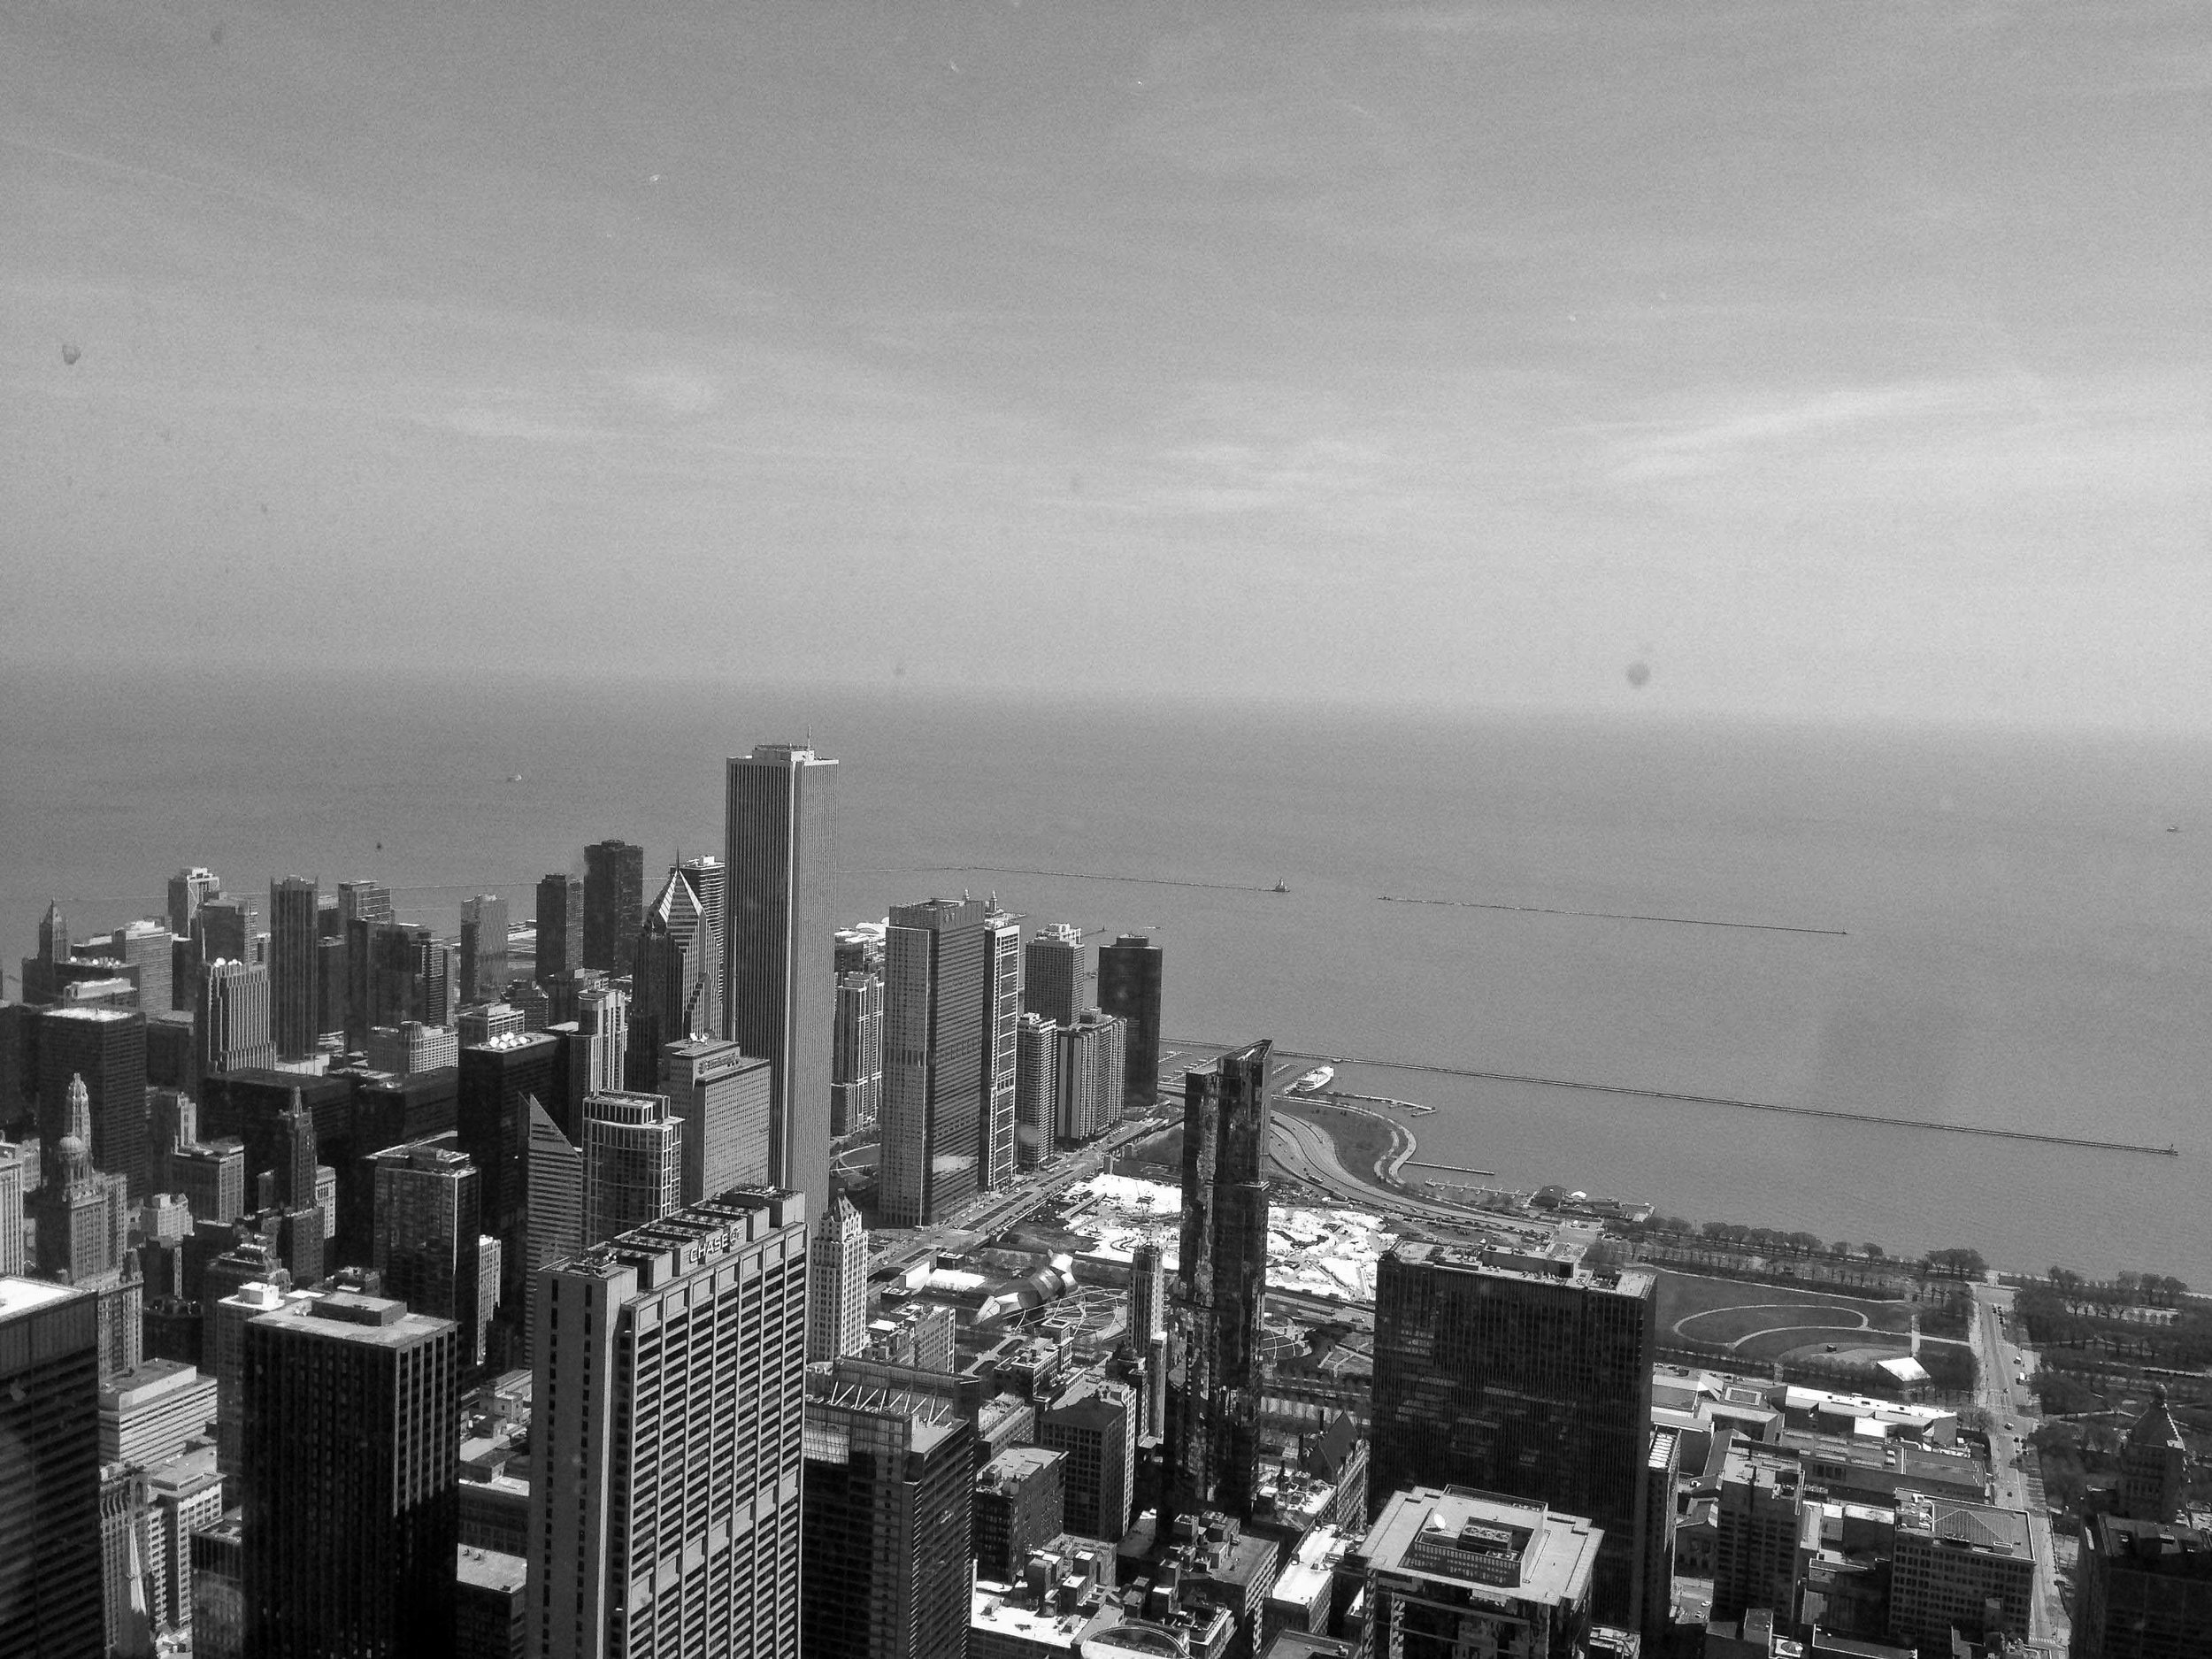 Chicago from the Willis Tower (formerly called the Sears Tower).